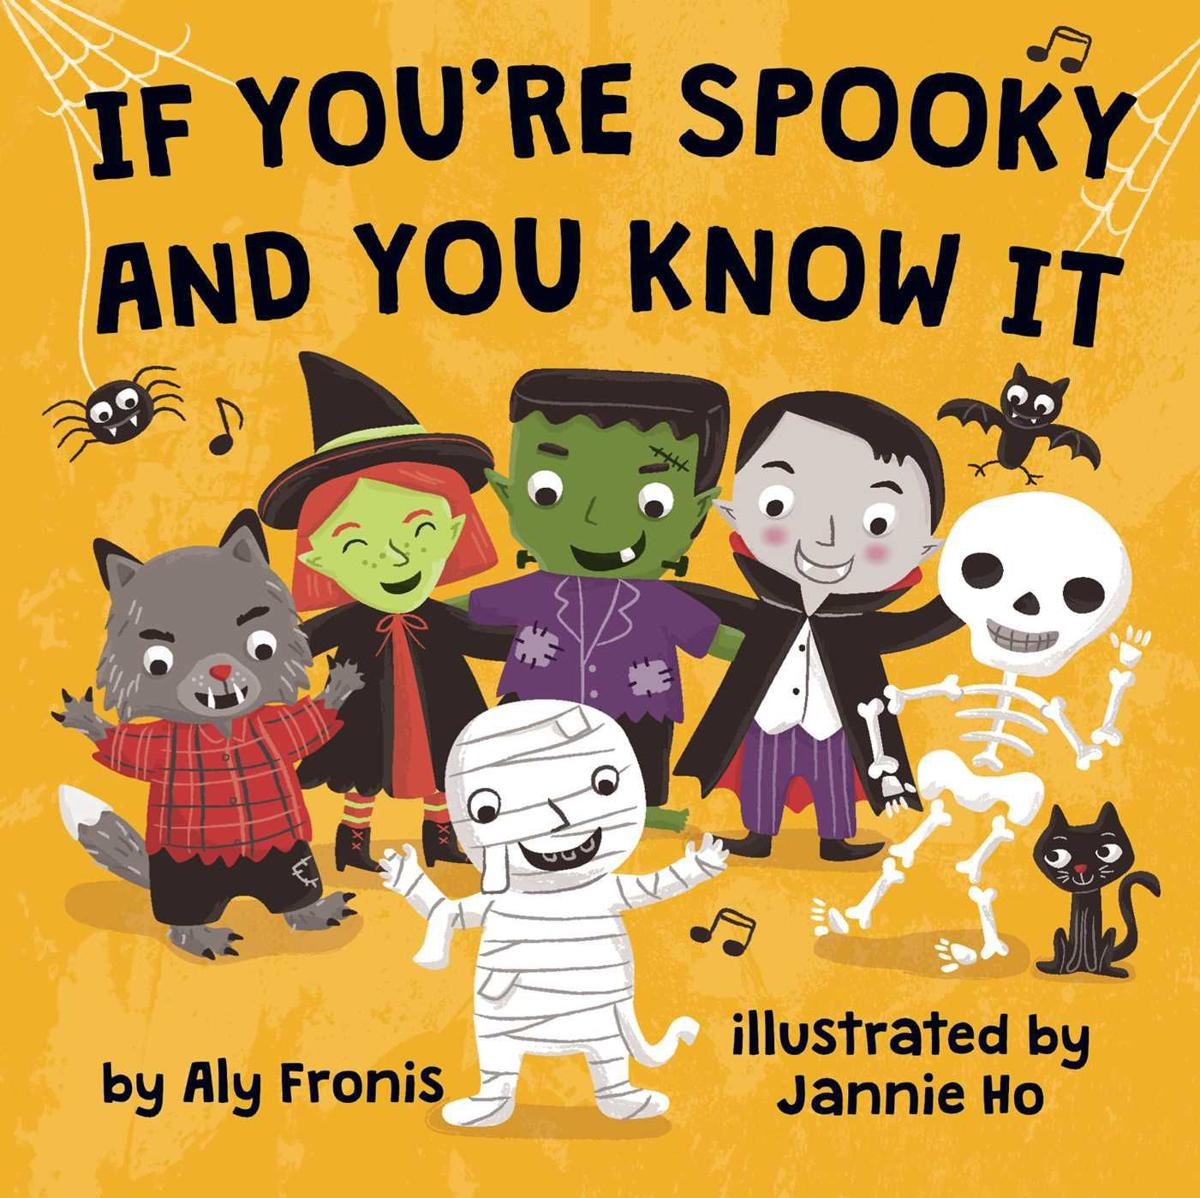 book corner seven spooky reads and more halloween fun at the library - Halloween Fun Images